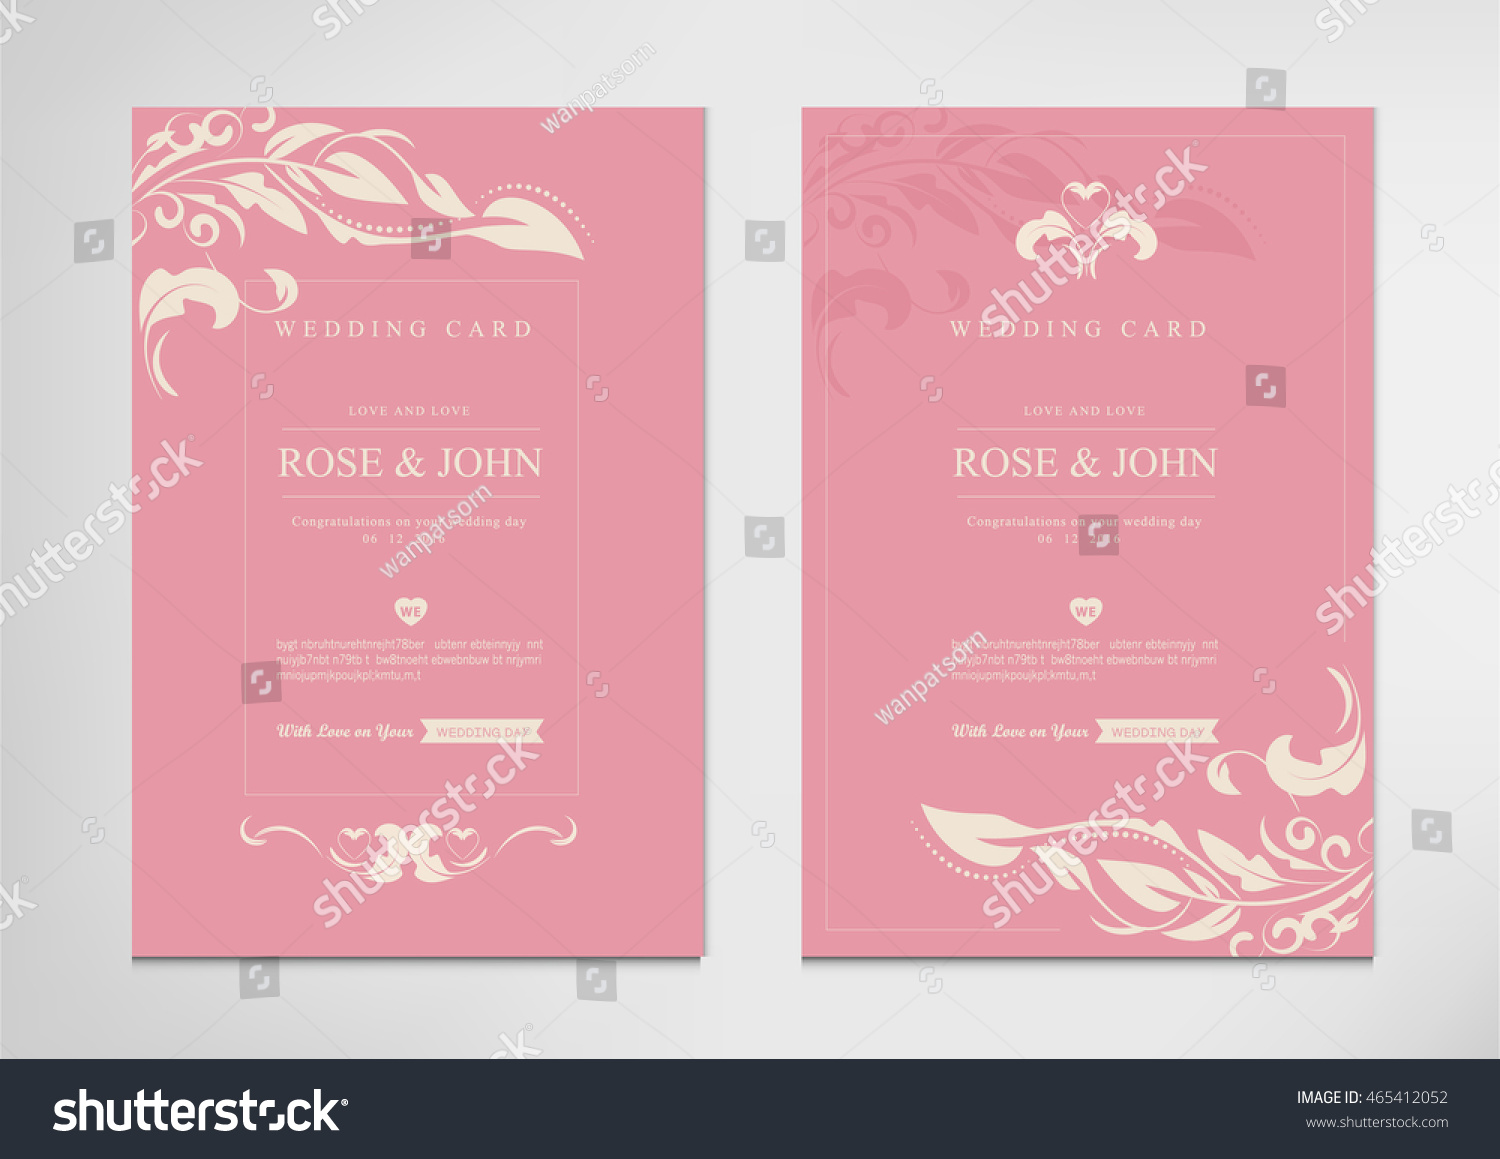 Wedding Invite Card Stock: Vintage Wedding Card Invitations Templates Vector Stock